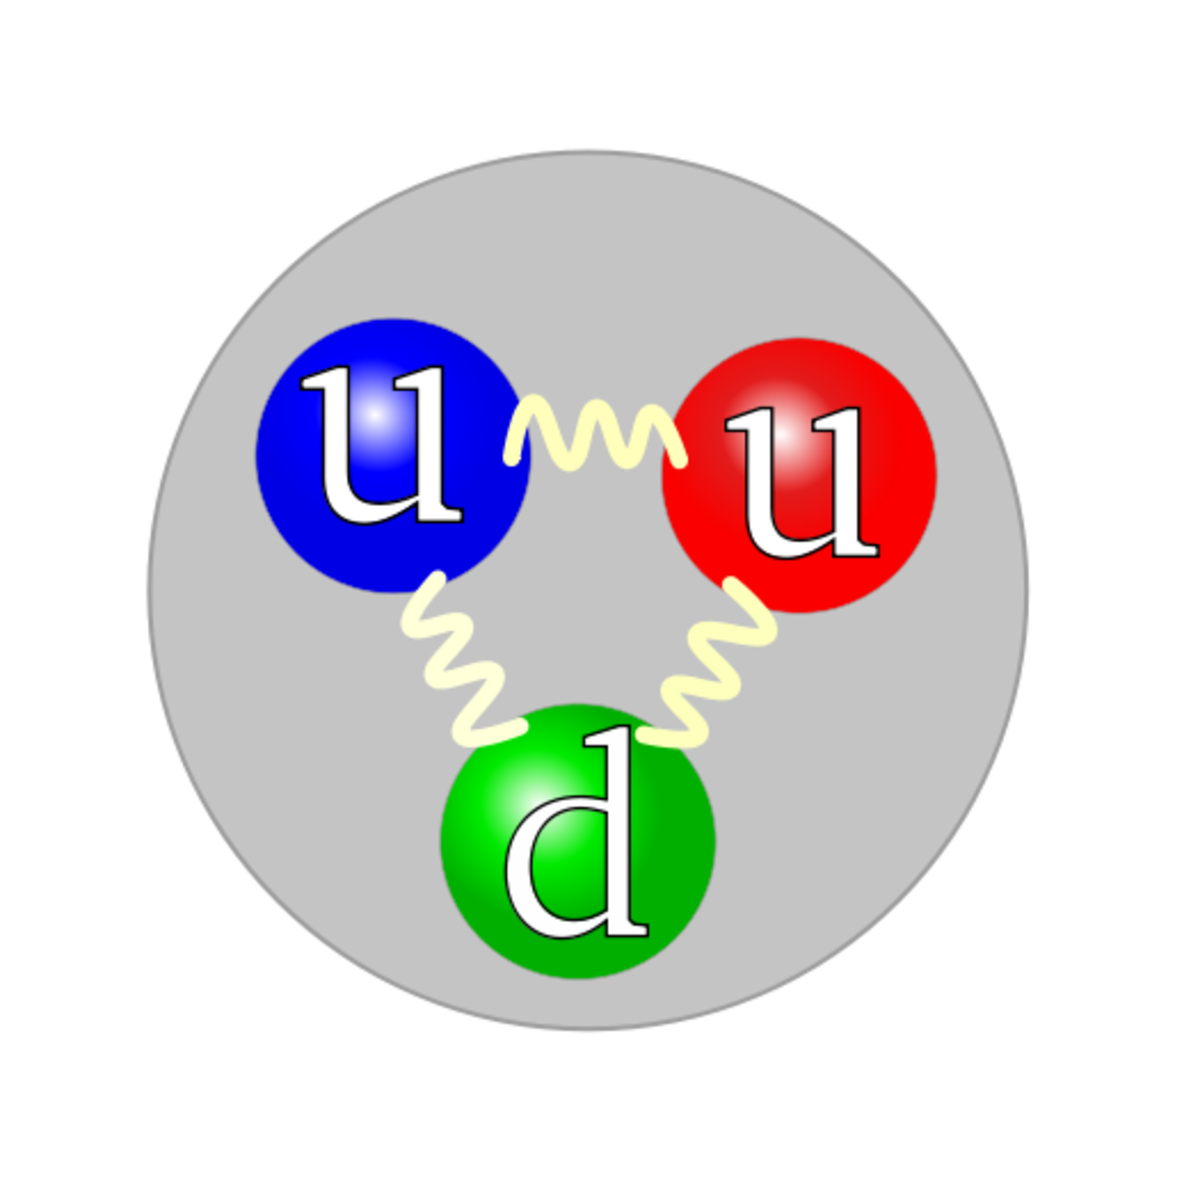 A proton, composed of two up quarks and one down quark. (The colour assignment of individual quarks is not important, only that all three colours be present.)